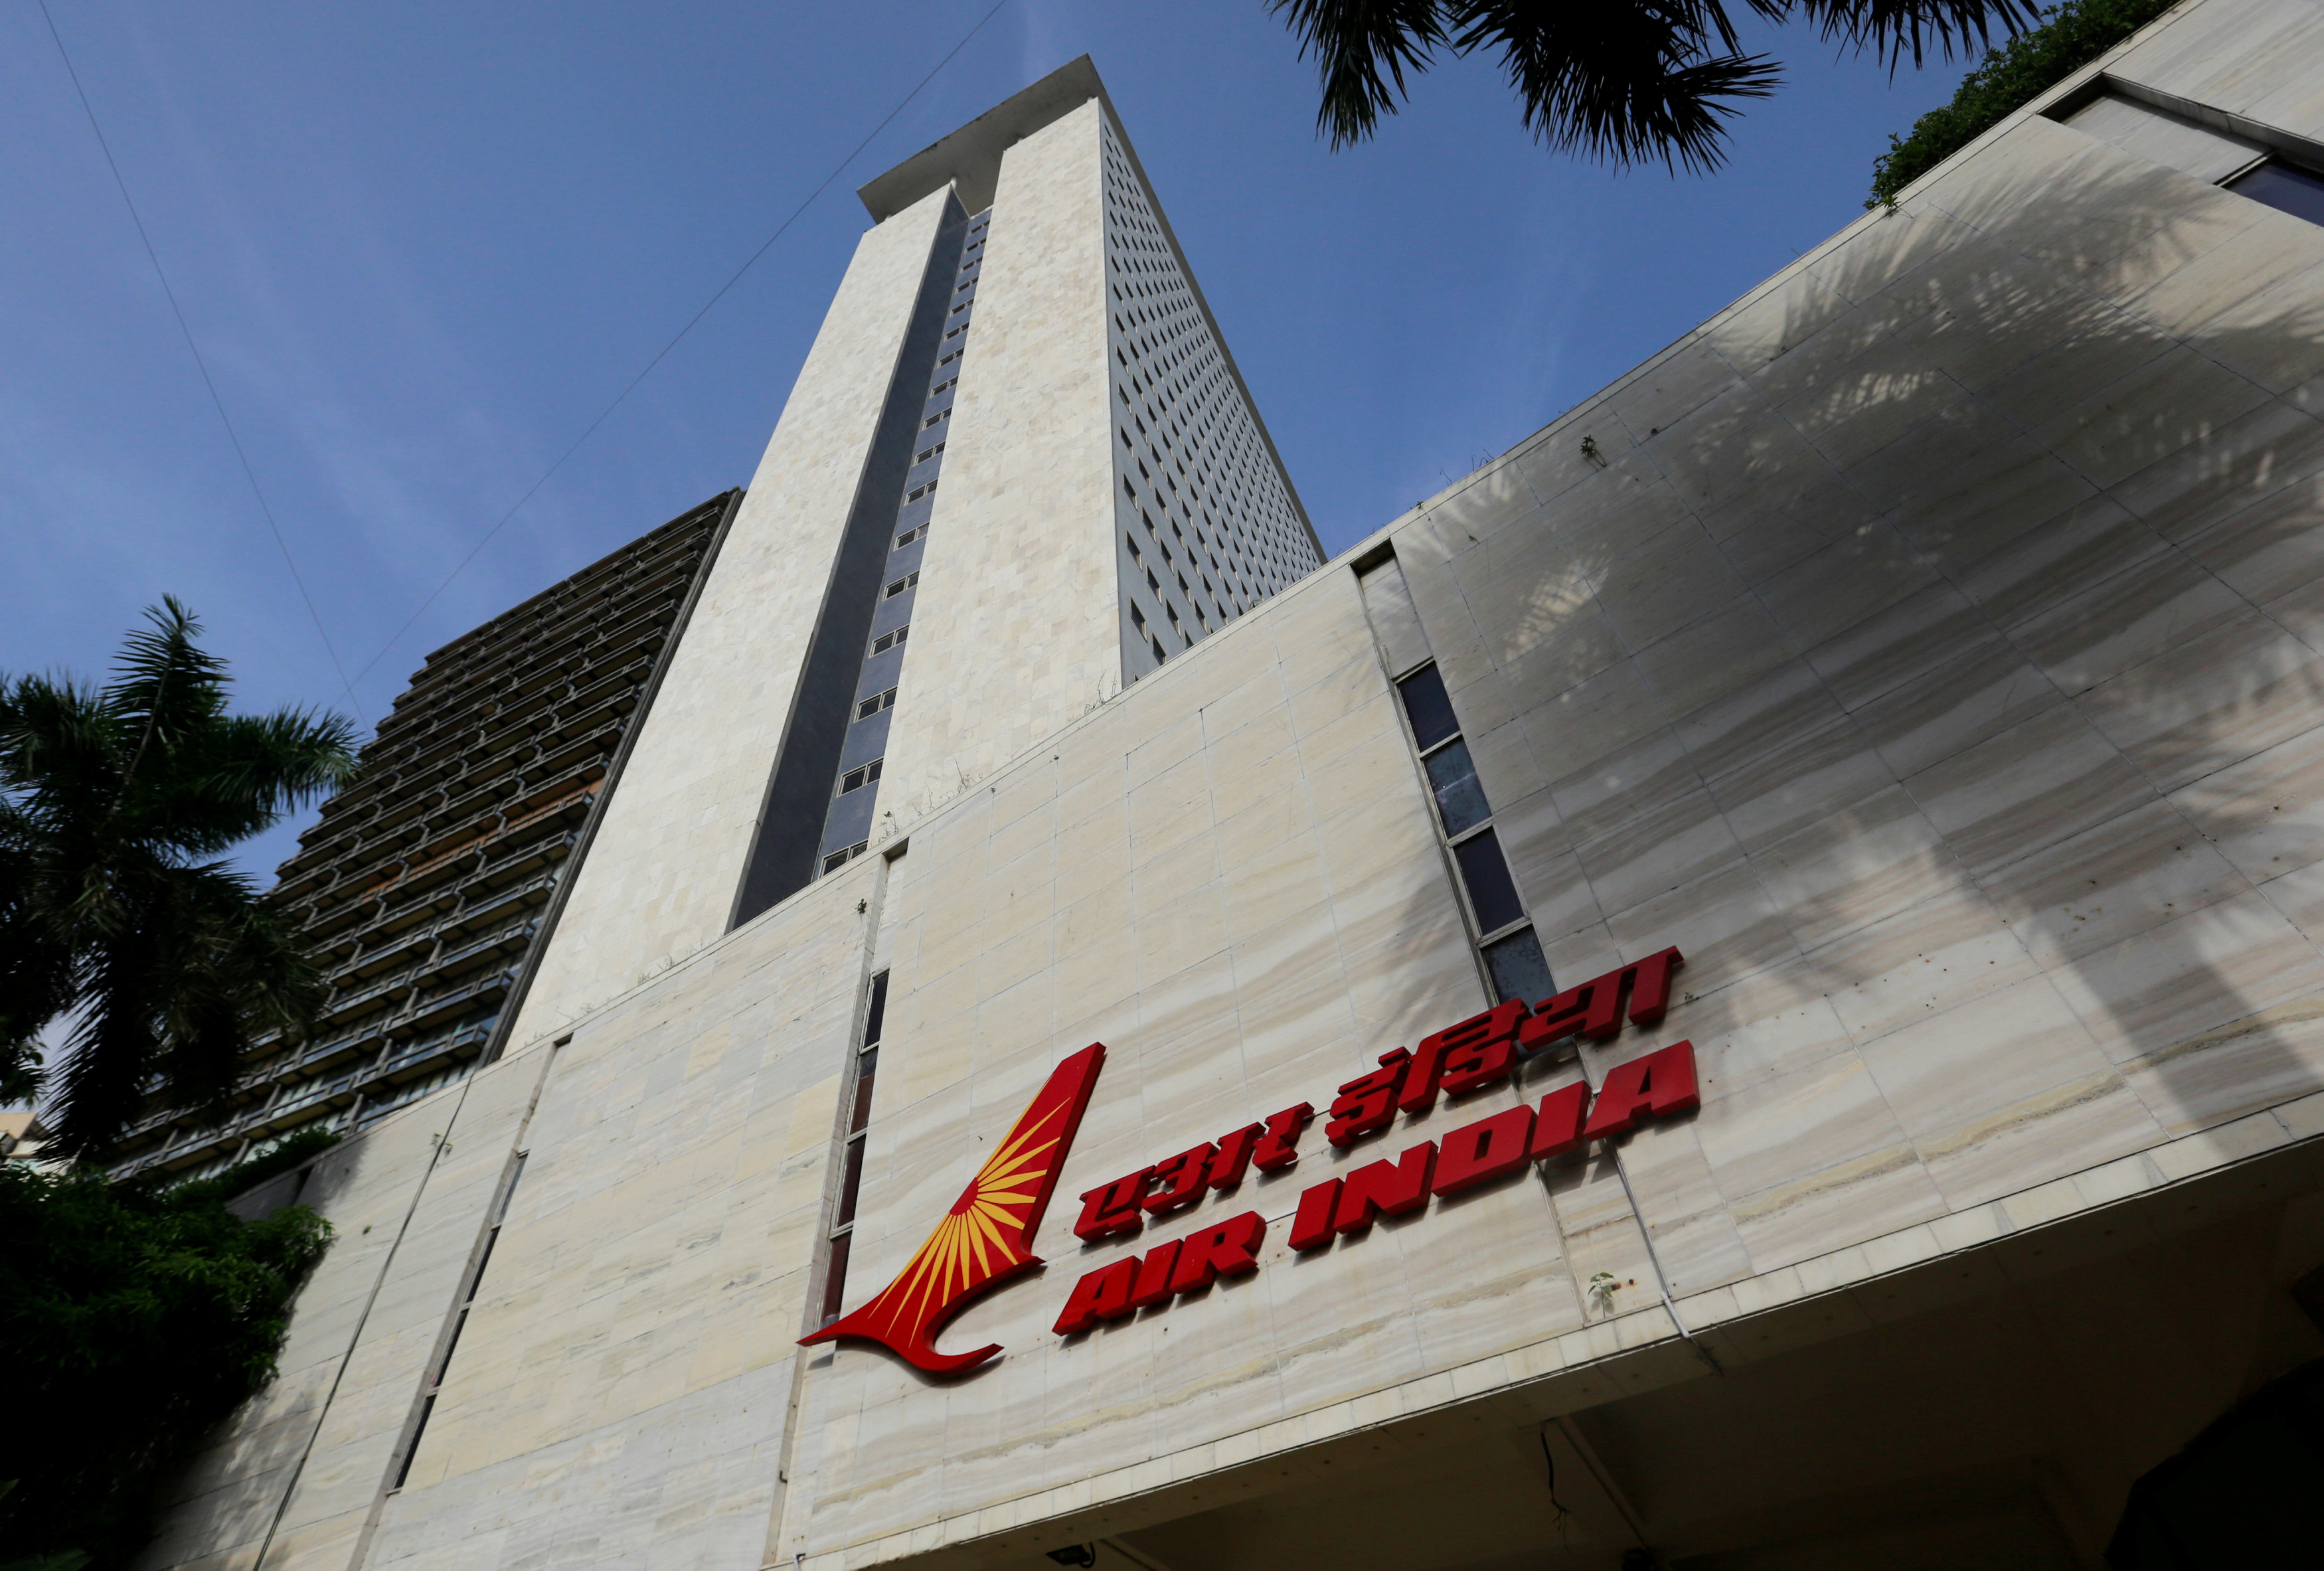 The Air India logo is seen on the facade of its office building in Mumbai, India, July 7, 2017. REUTERS/Danish Siddiqui